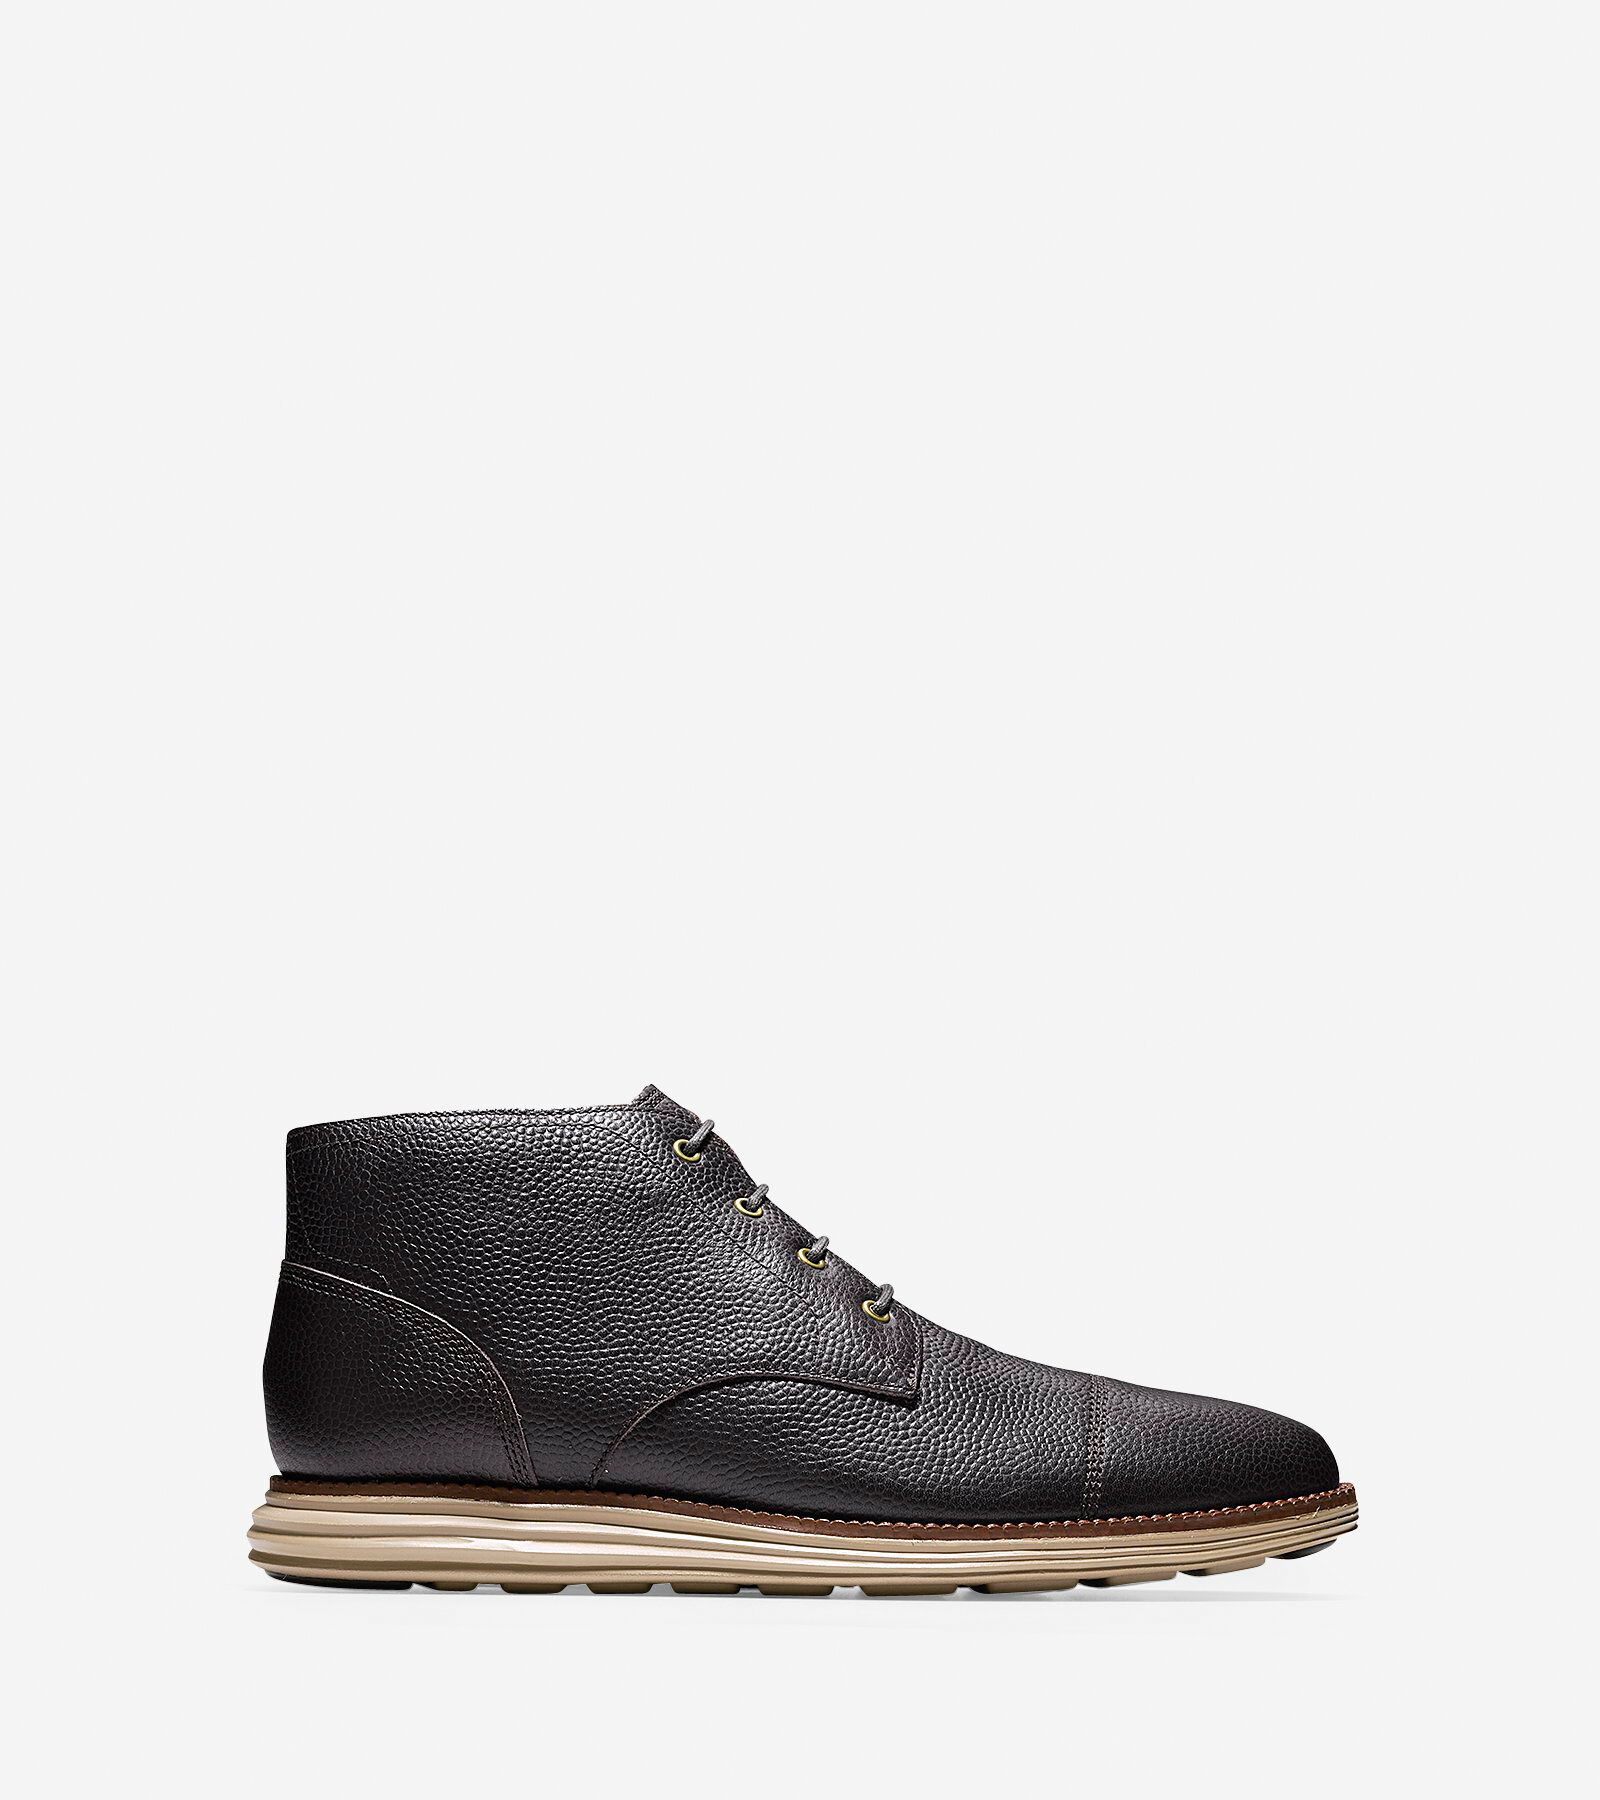 cole haan shoes logos with hidden meanings pittsburgh 696992